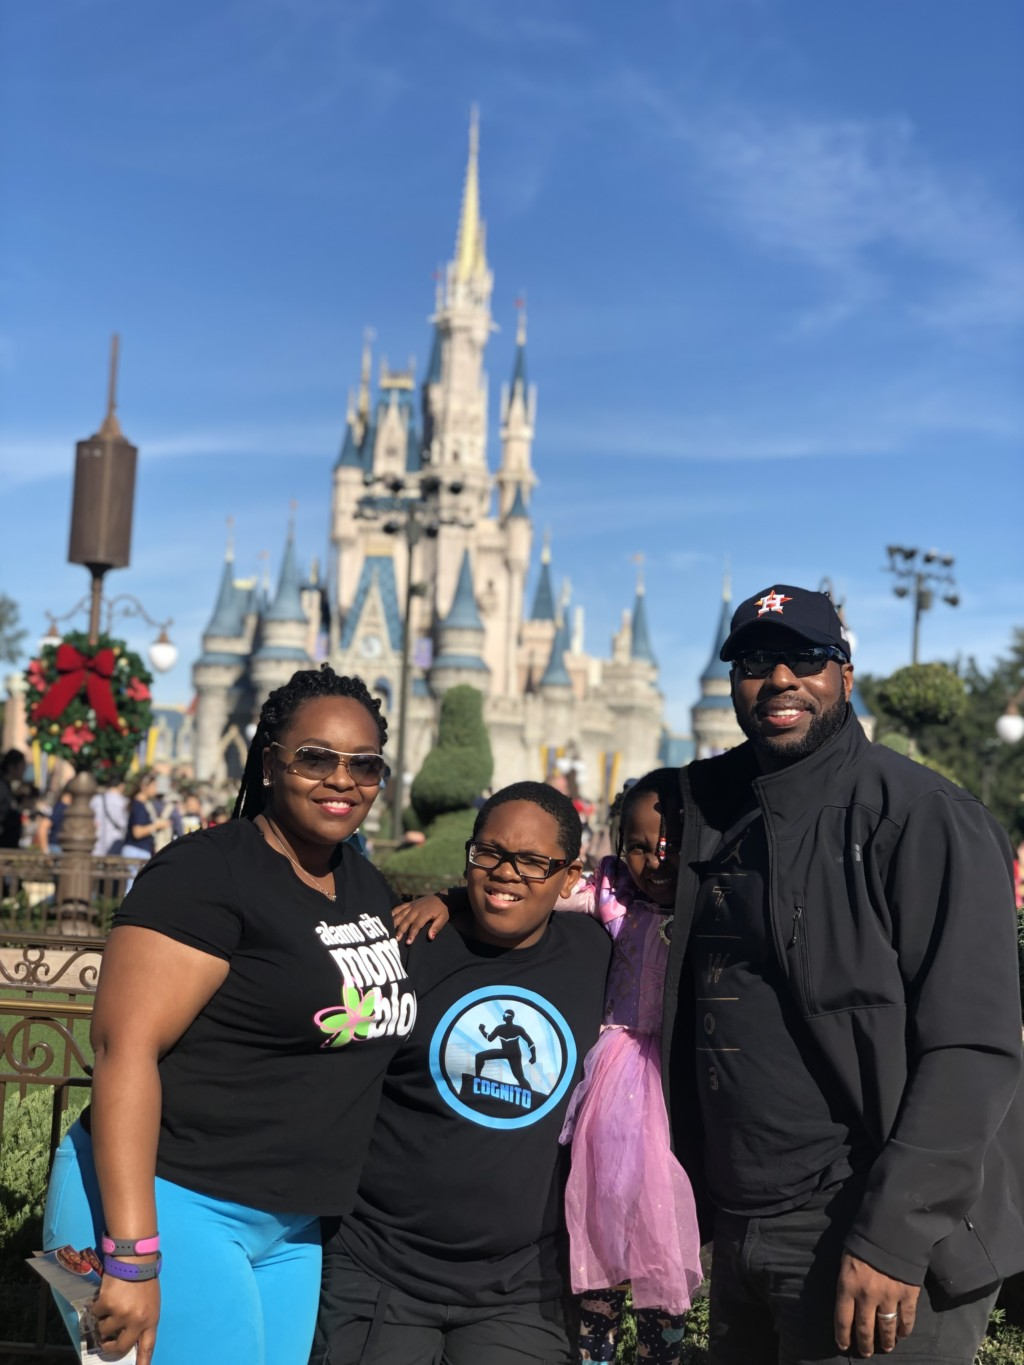 Family posing in front of Cinderella's castle